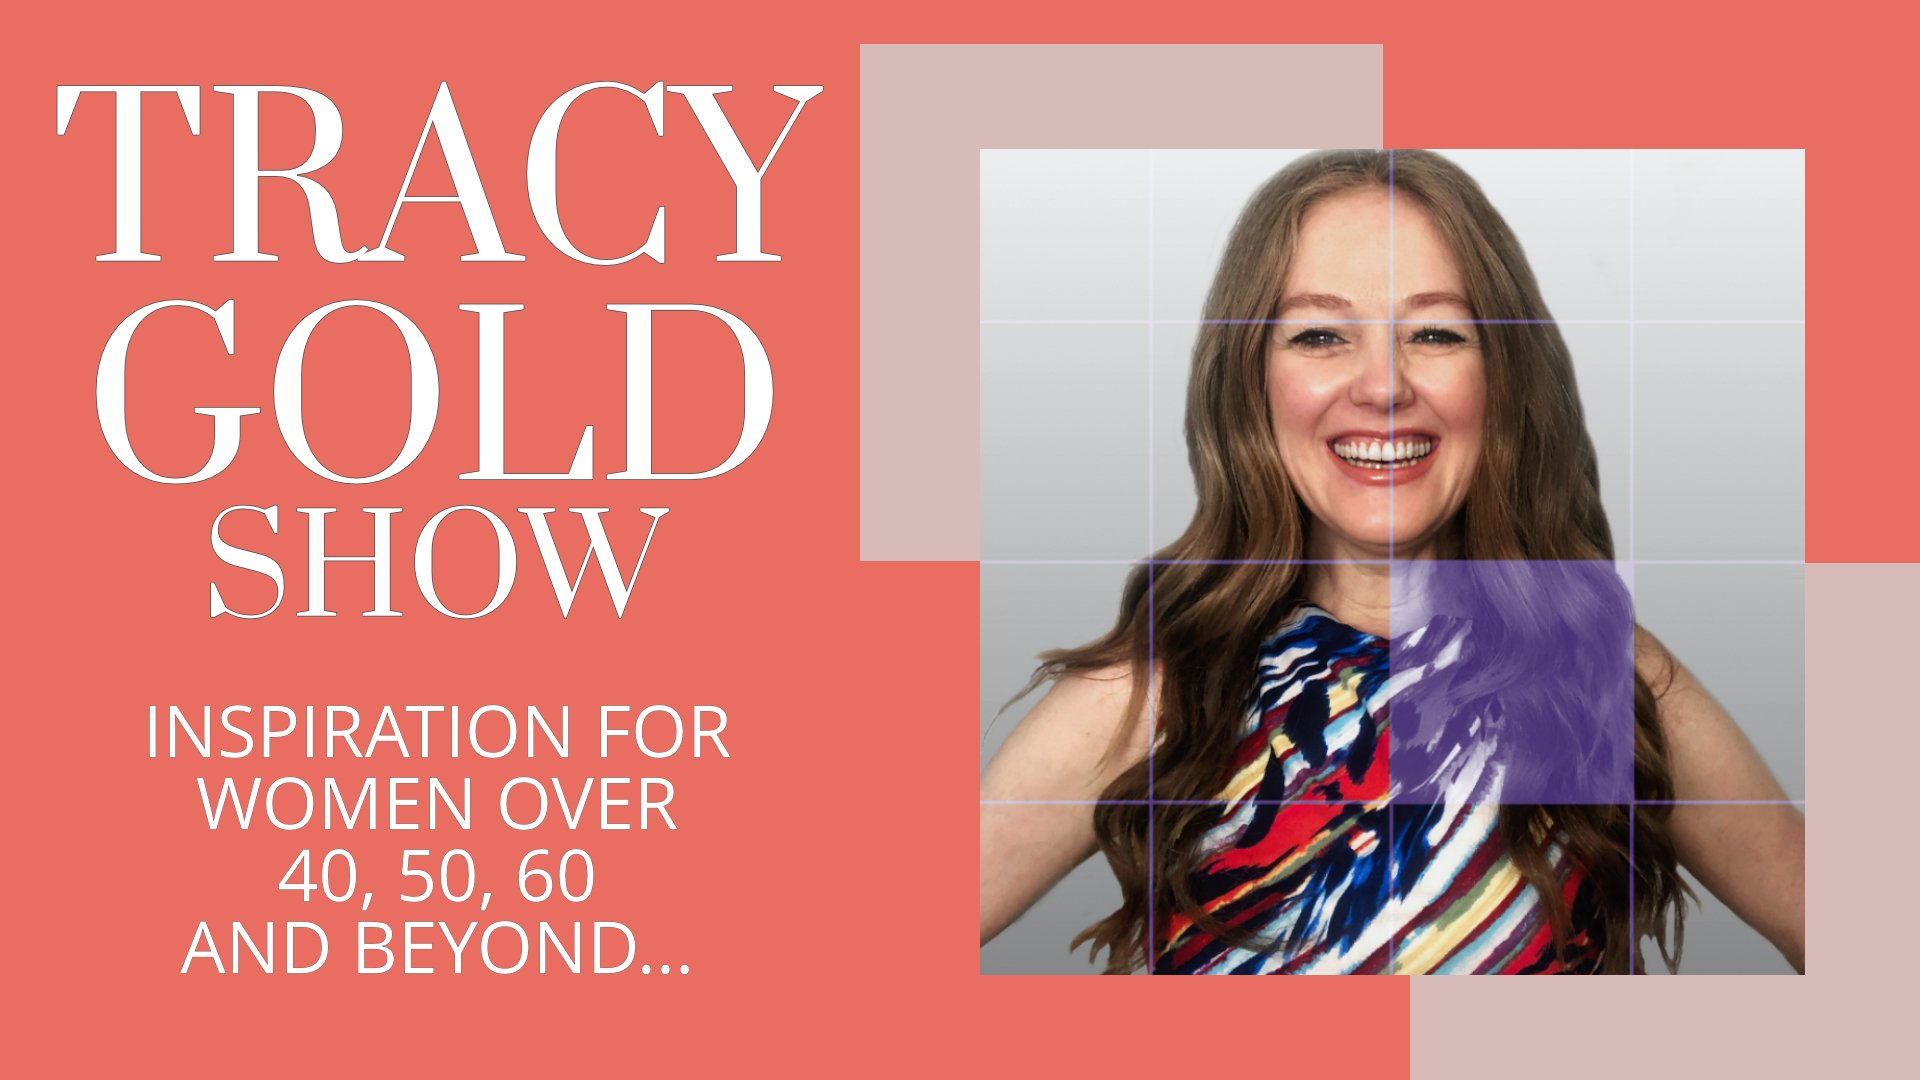 Tracy Gold Show - The Lifestyle Show for Women over 40, 50, 60 and beyond